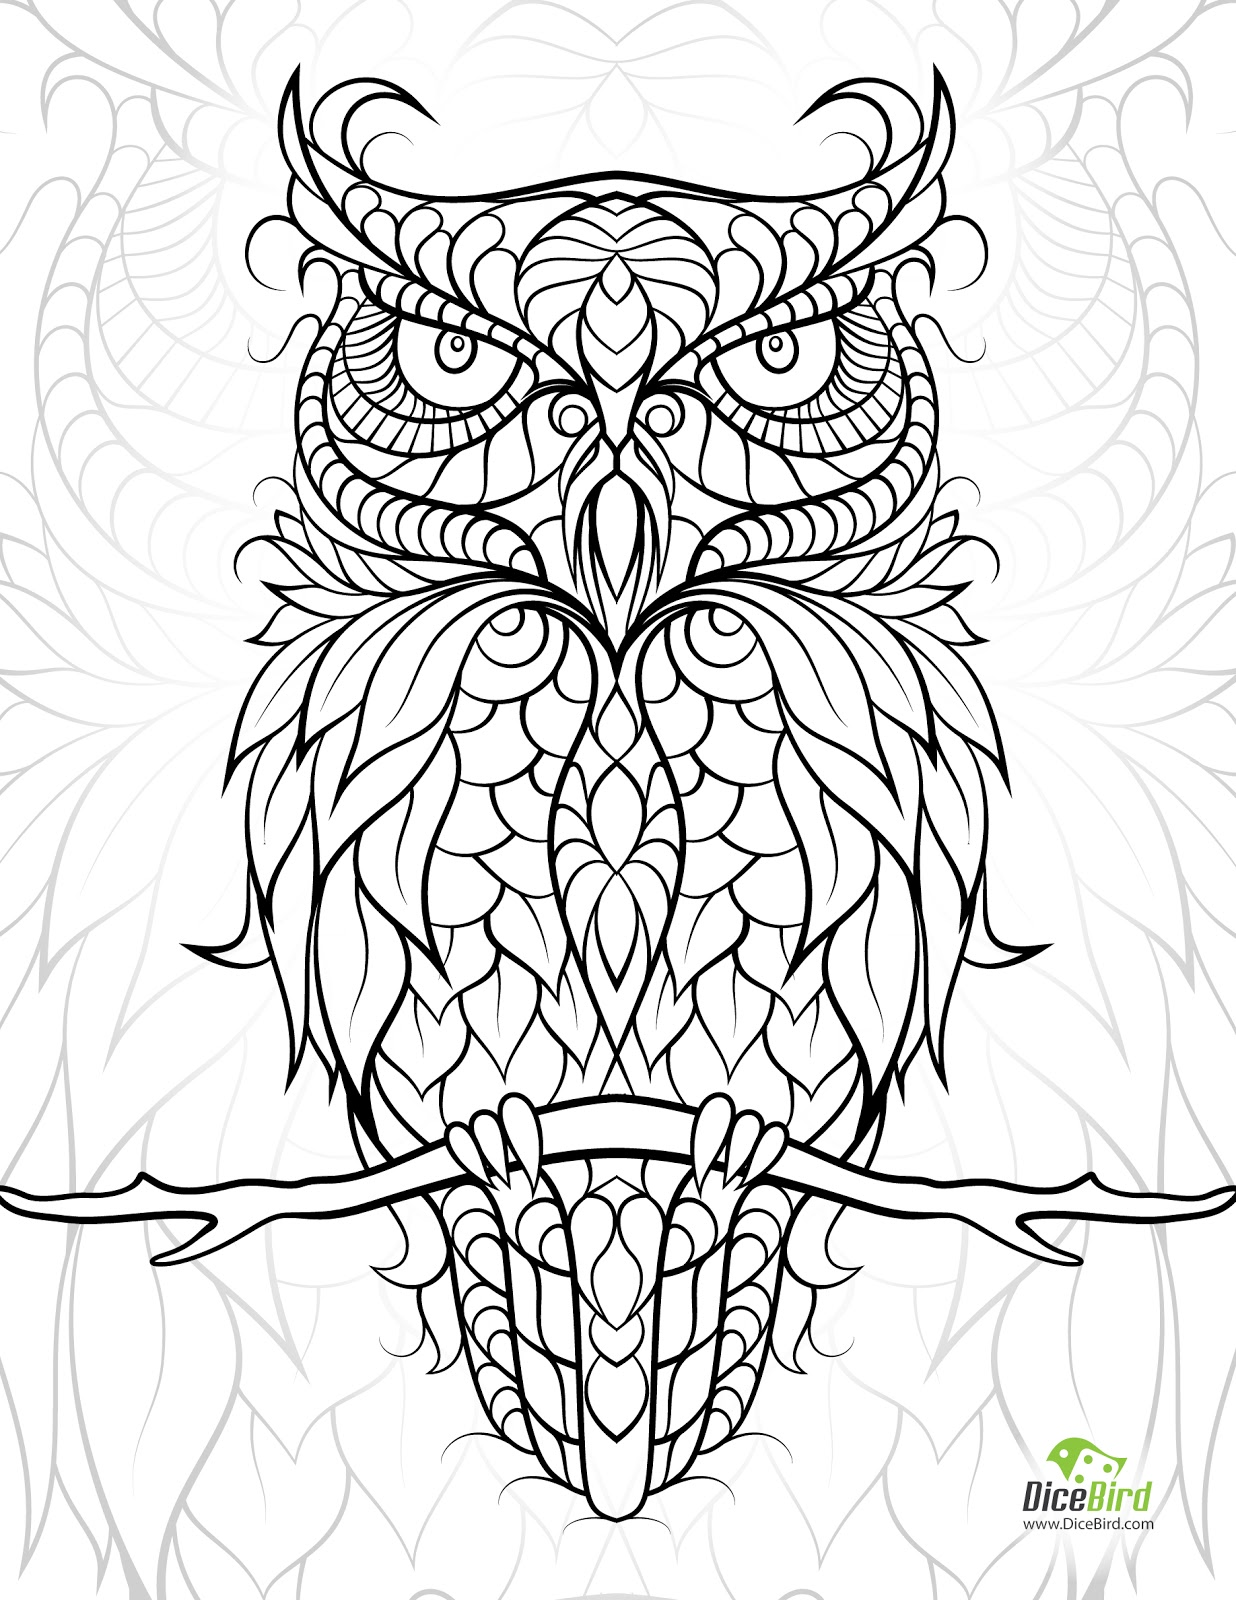 coloring pages for adults hd printable lion coloring pages for adults hd png download hd adults for coloring pages